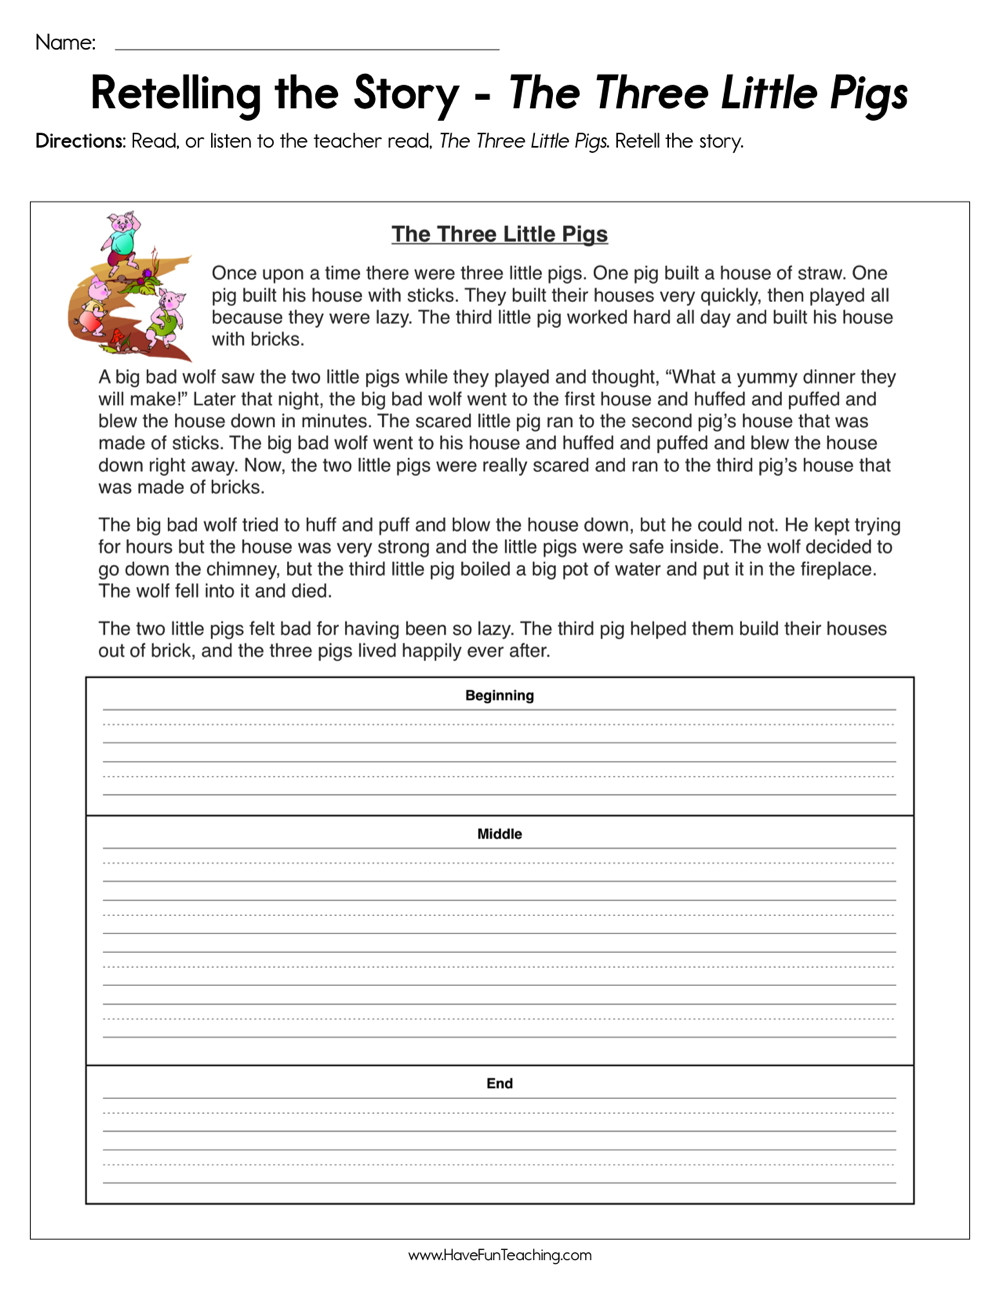 6th Grade Summarizing Worksheets Retelling the Story the Three Little Pigs Worksheet